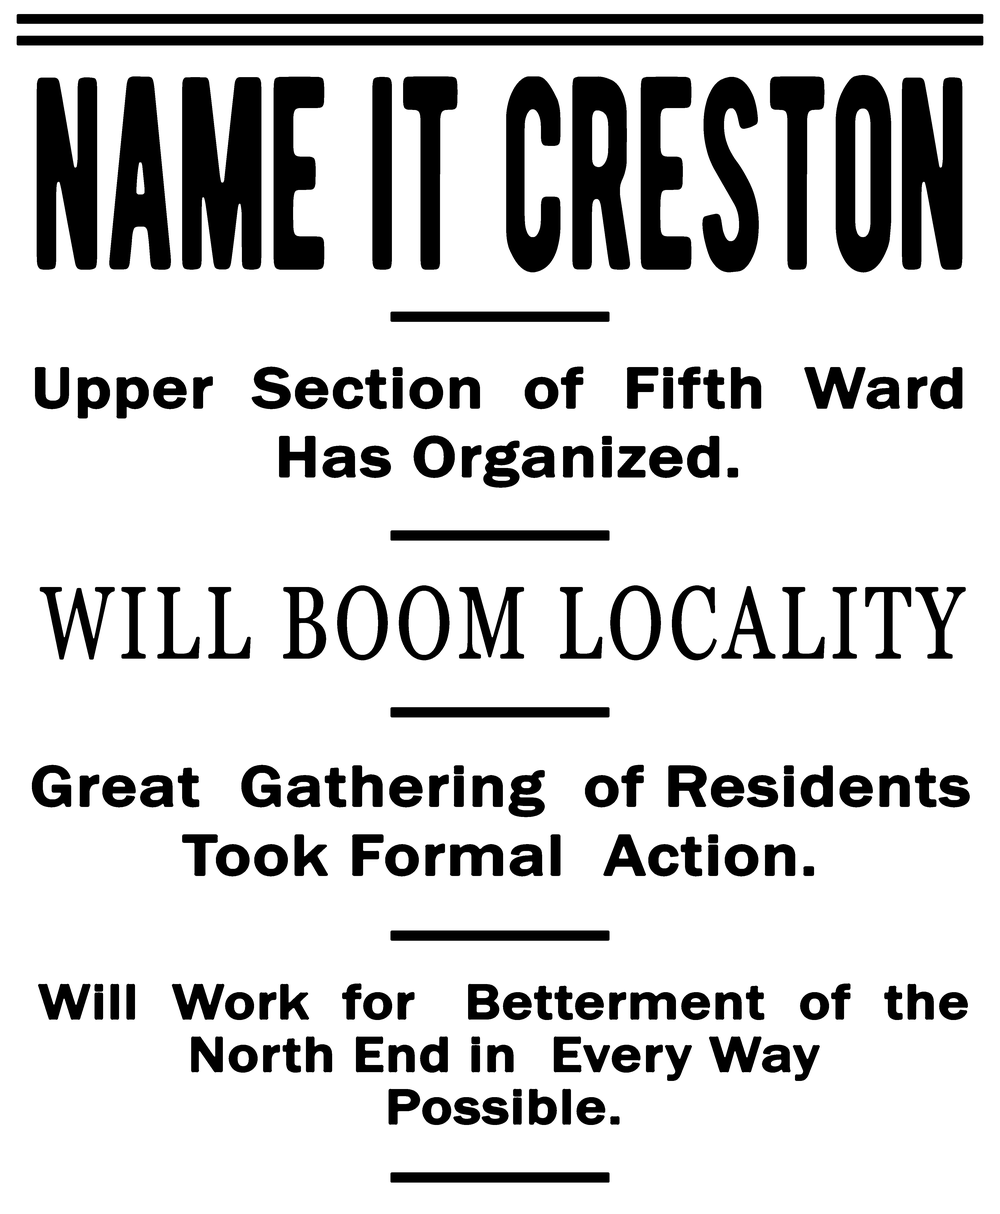 Name it Creston 03.png